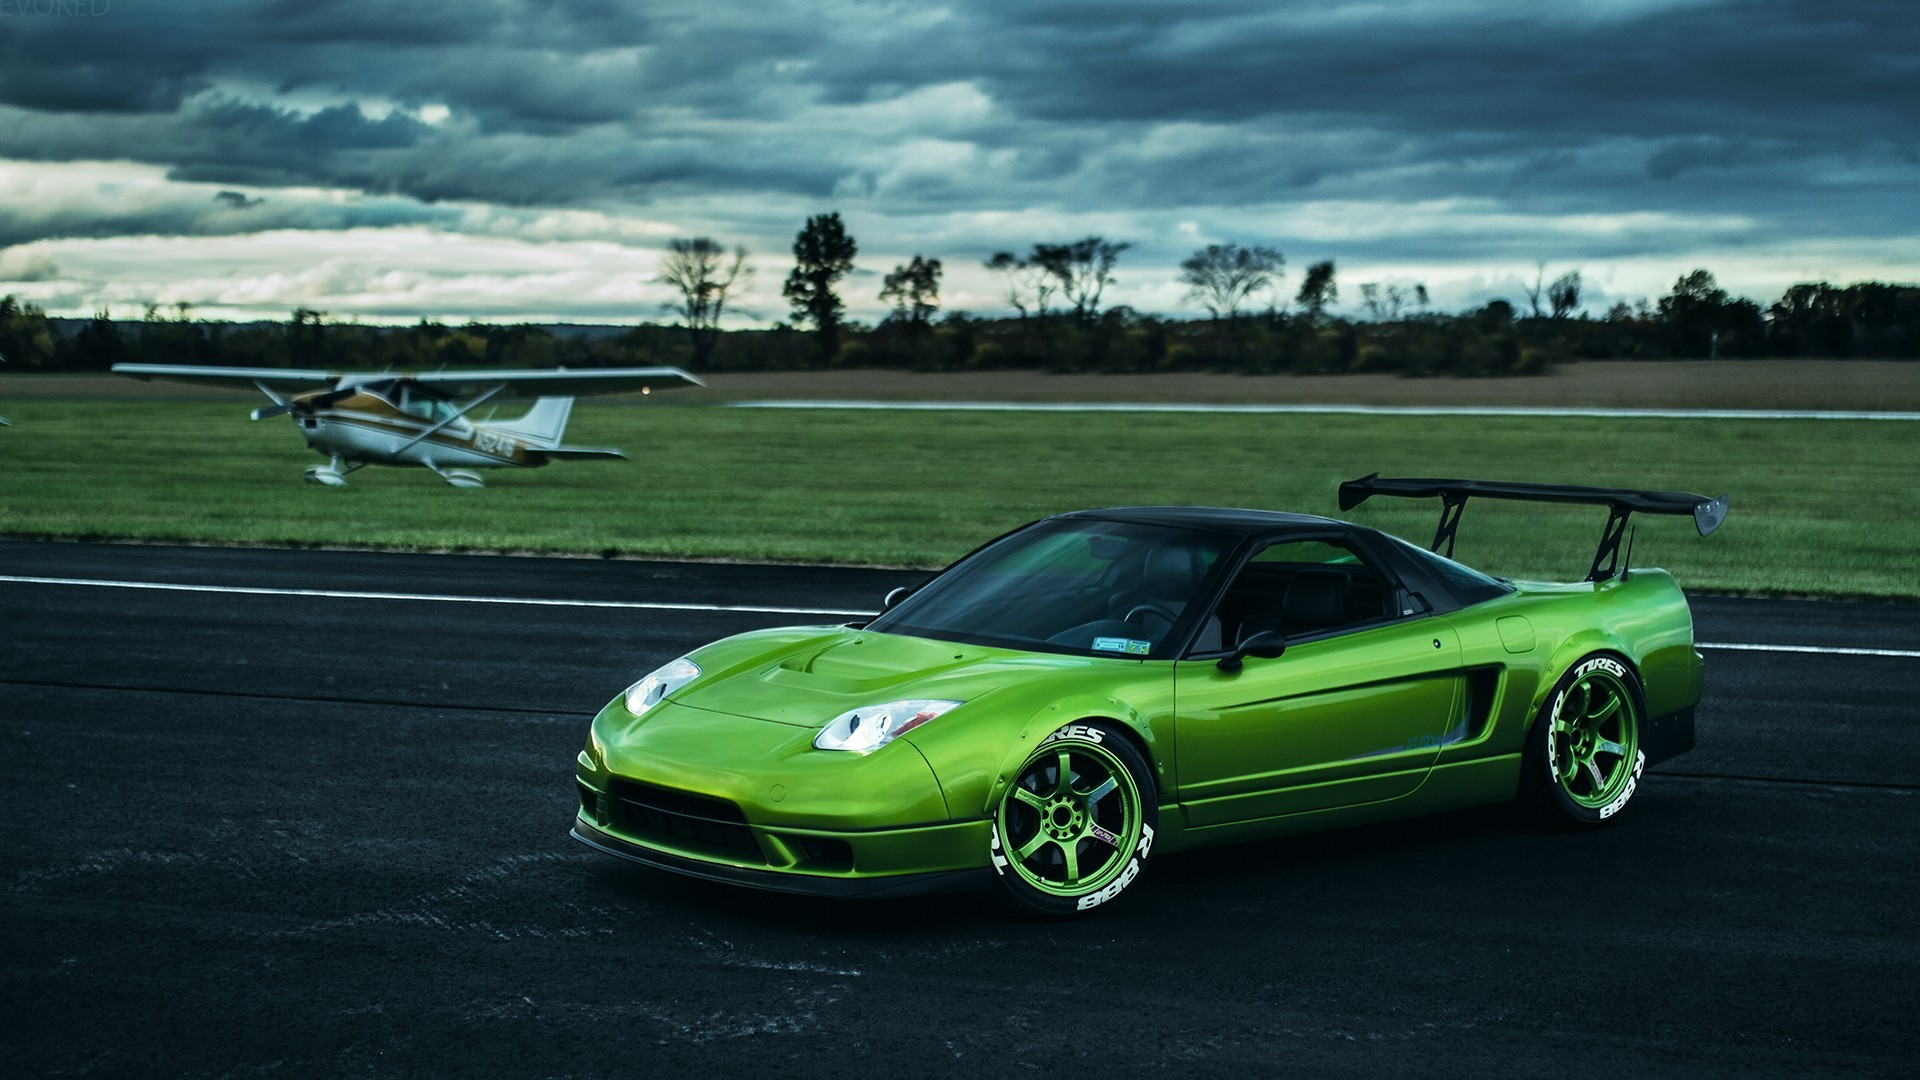 Retro Car Home Wallpaper Honda Honda Nsx Airport Car Rims Wallpapers Hd